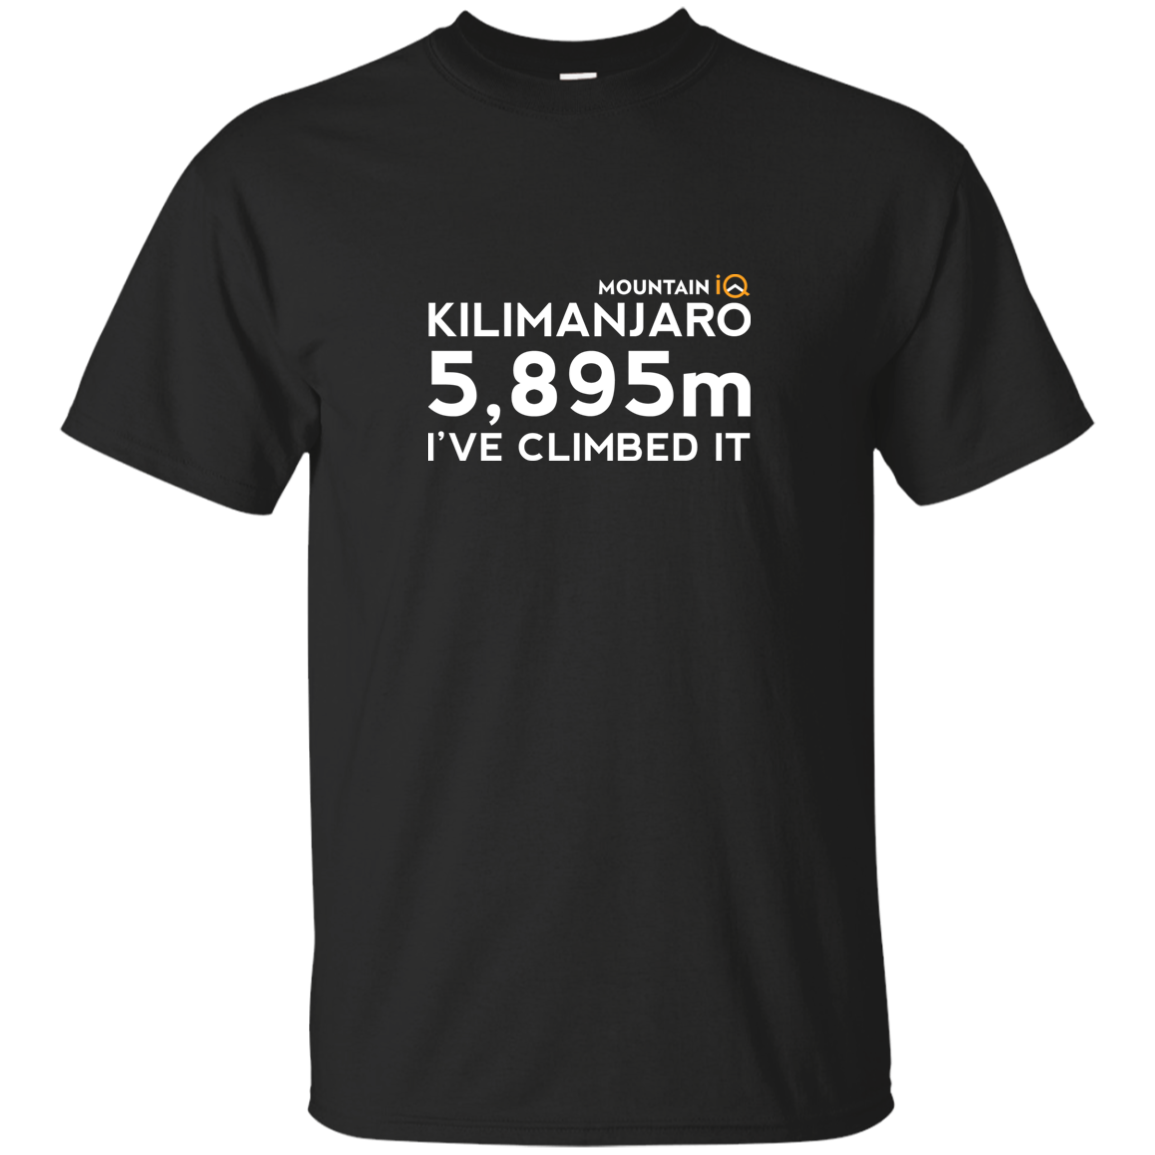 Kilimanjaro Climb in Meters Men's T-Shirt (Cotton/Wicking)